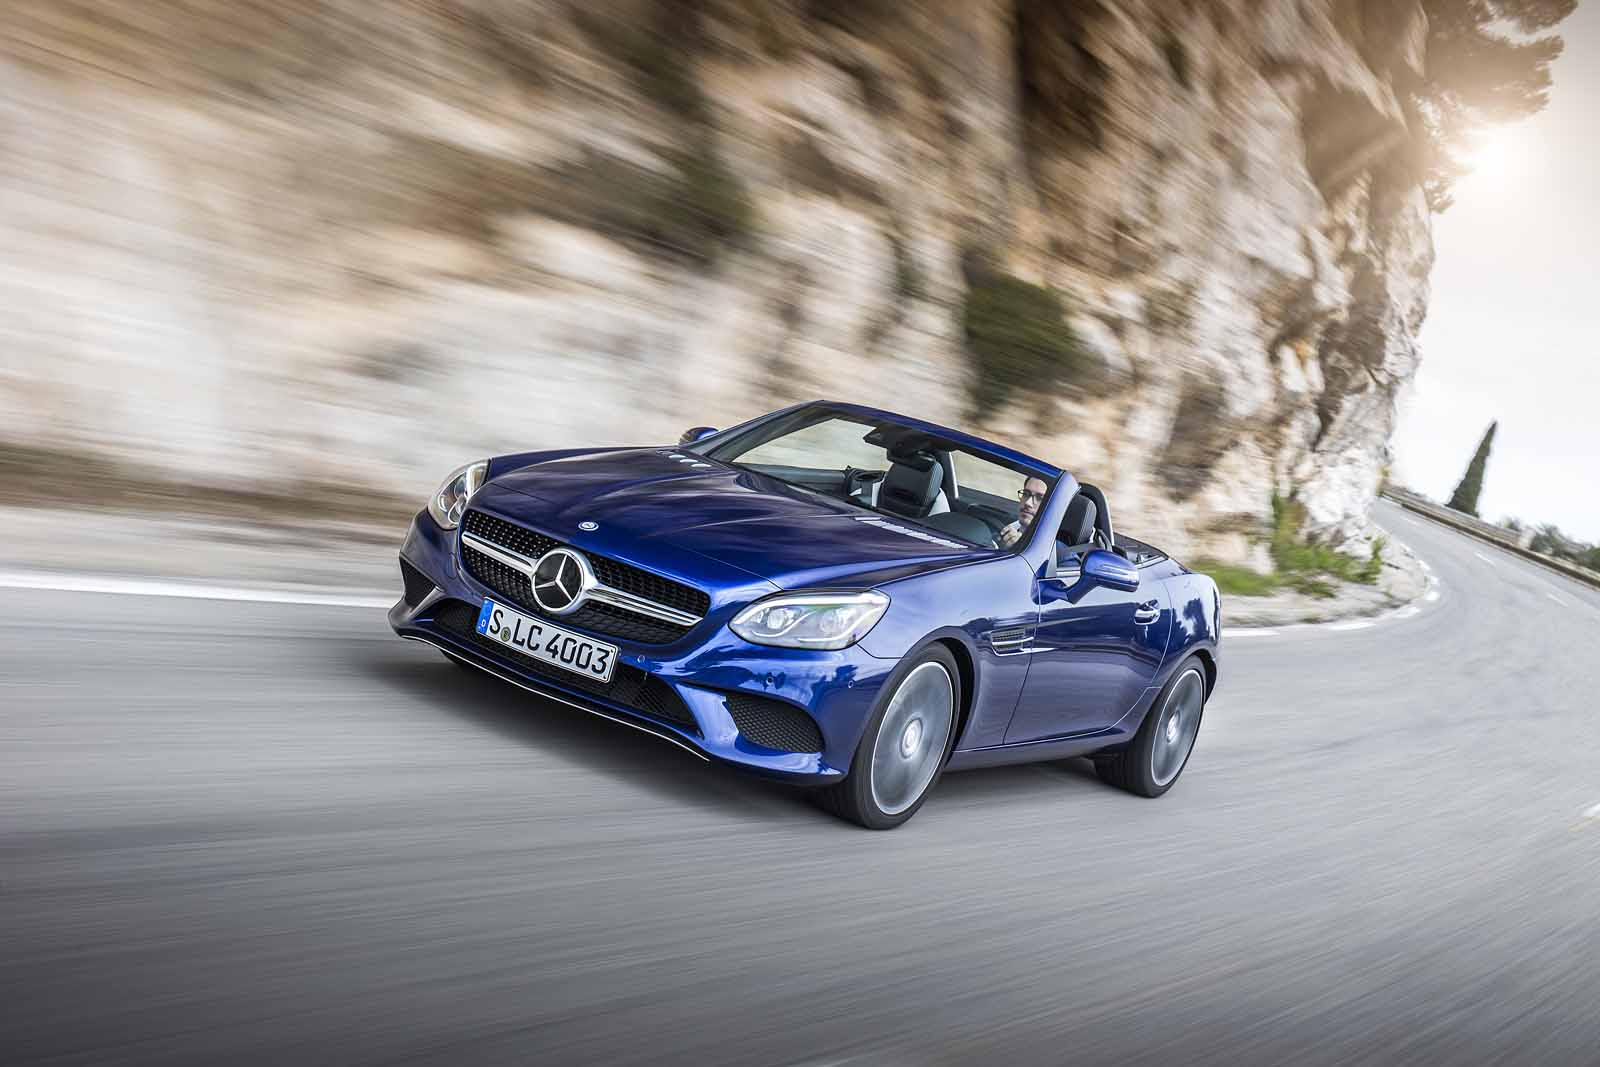 2017 mercedes benz slc 300 roadster review for Slc mercedes benz